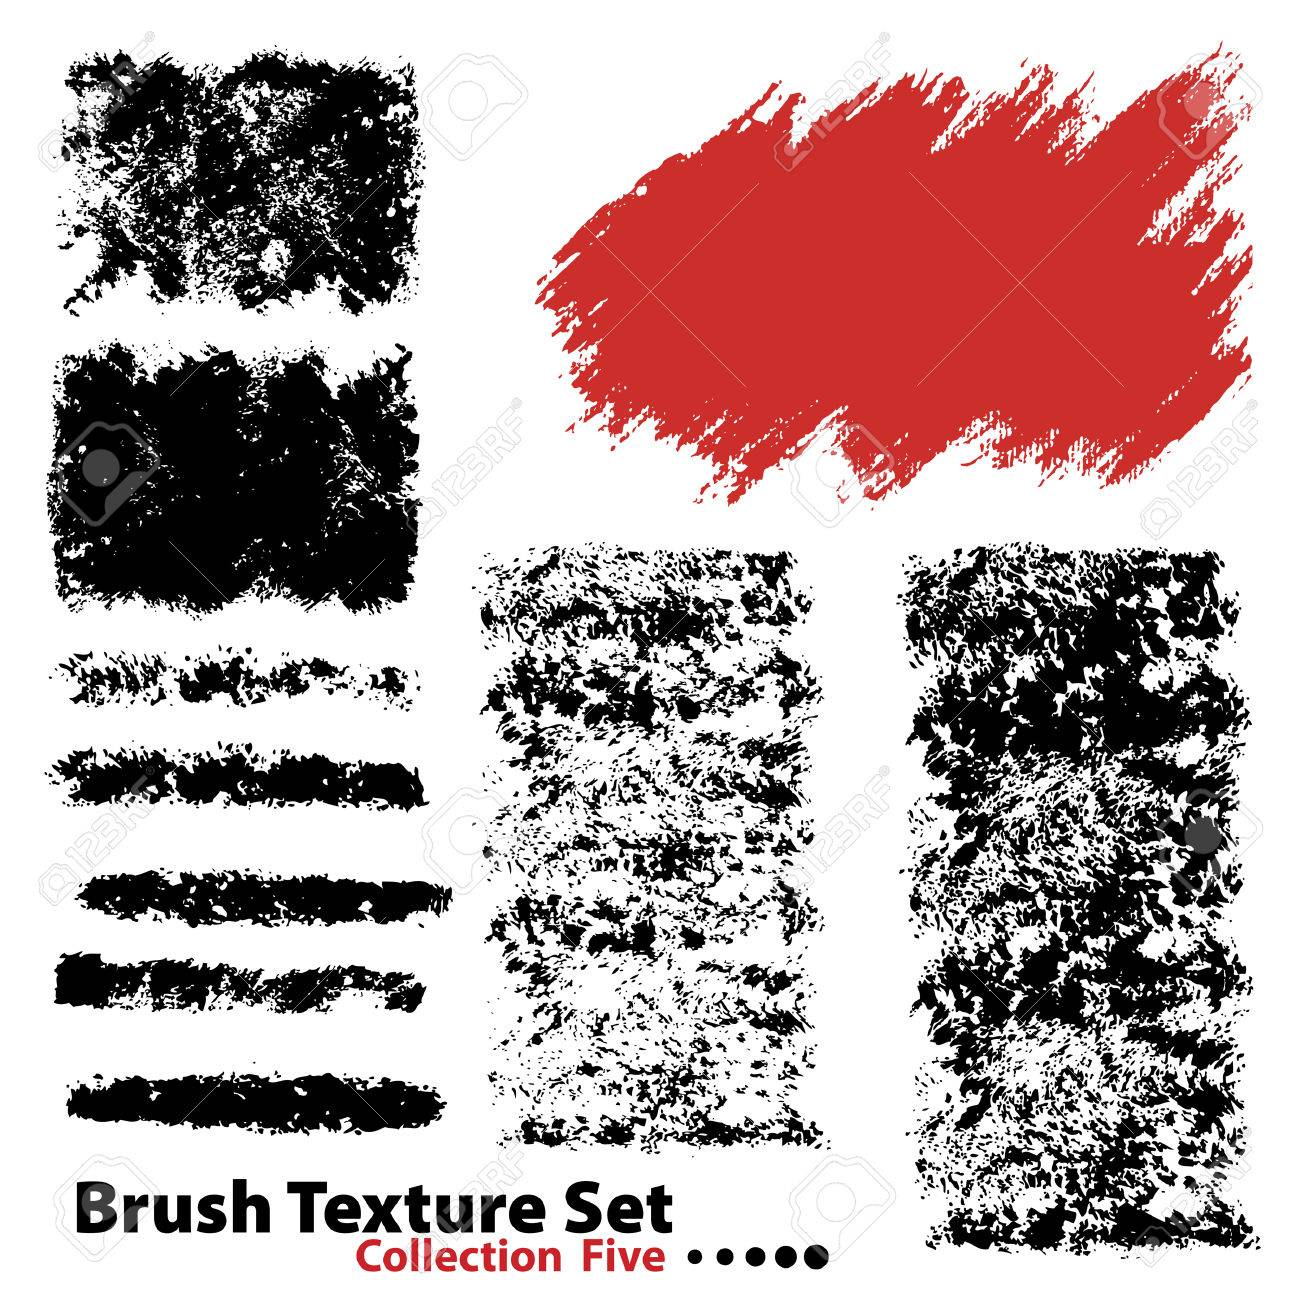 Vector outline traces of customizable organic paint brushes (strokes) in different shapes and styles, highly detailed. Grouped individually, easily editable. Collection set number 5. - 4039153